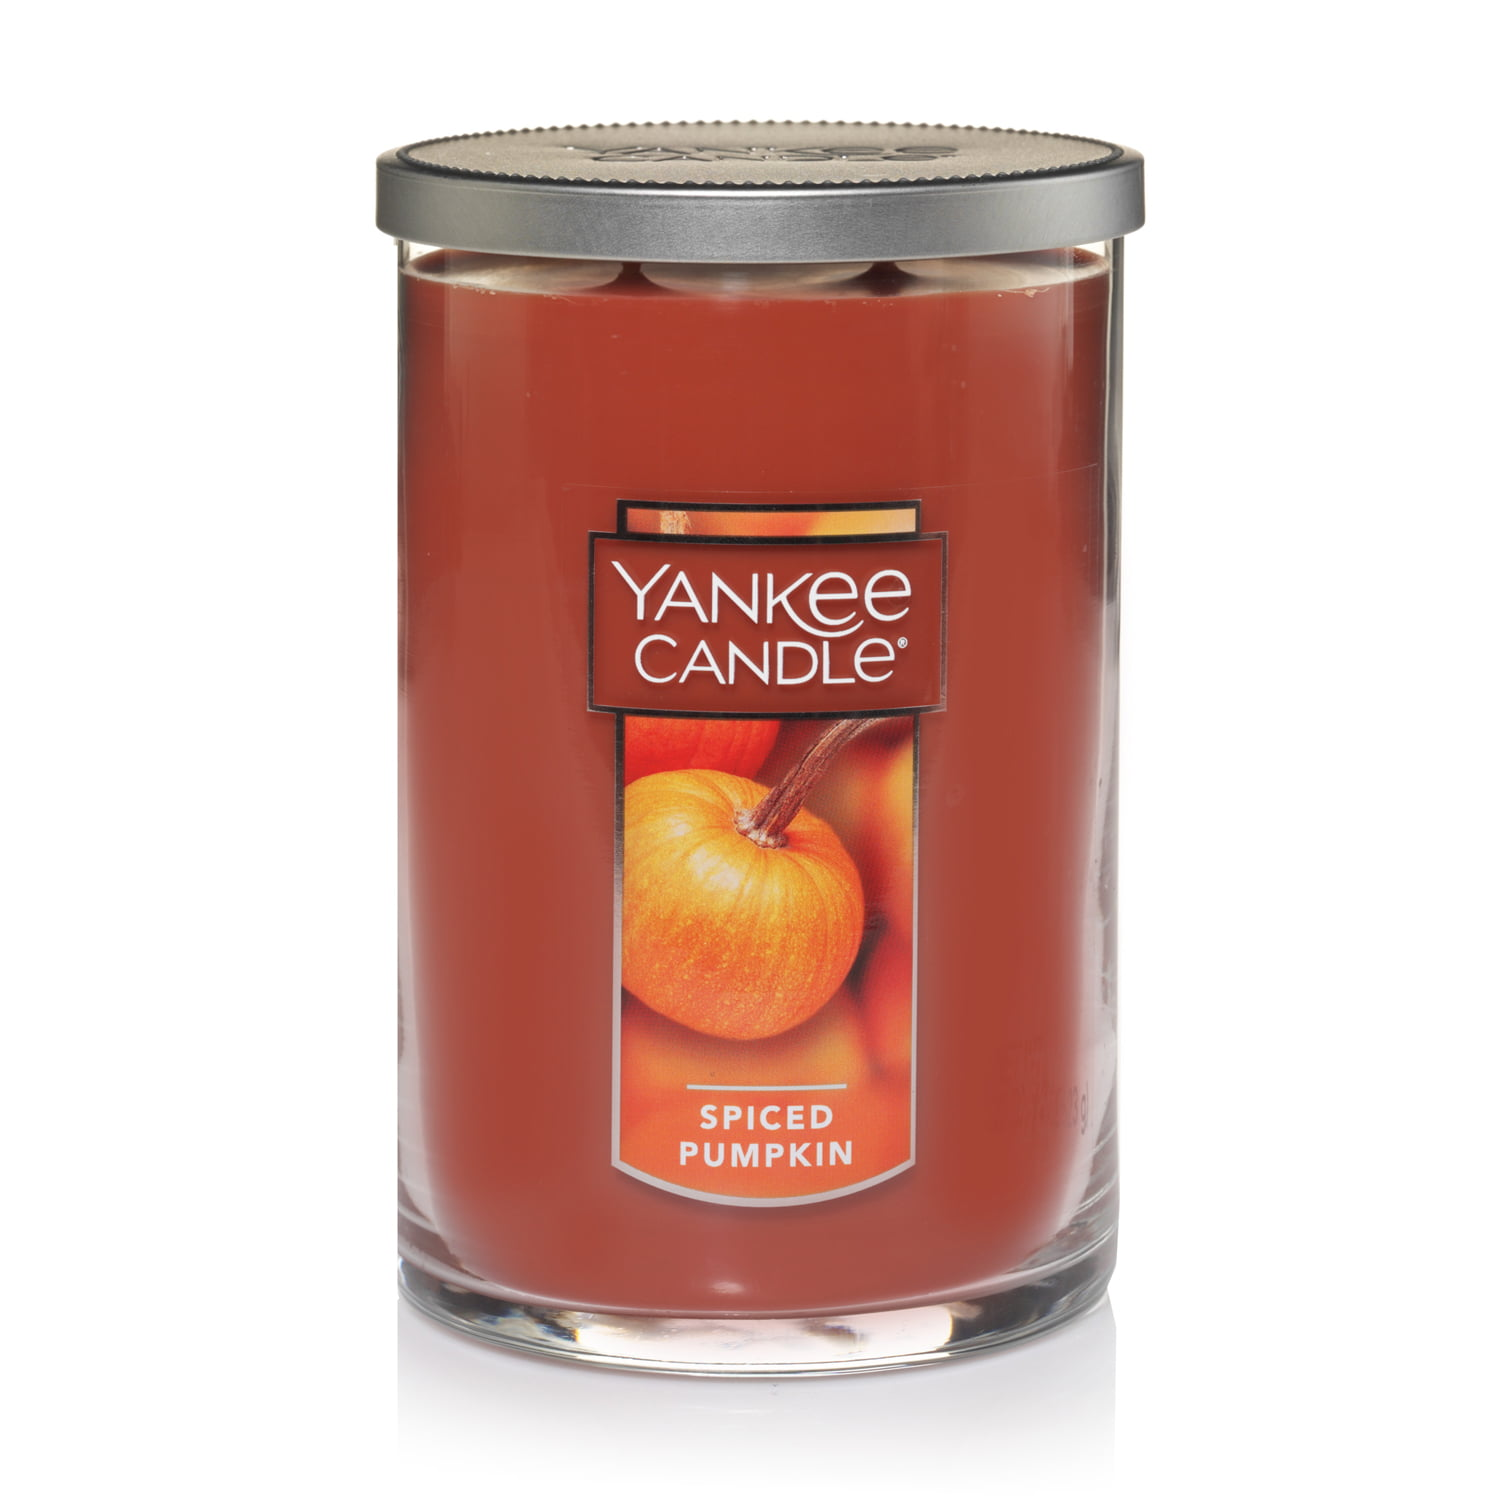 Yankee Candle Large 2-Wick Tumbler Candle, Spiced Pumpkin by Newell Brands